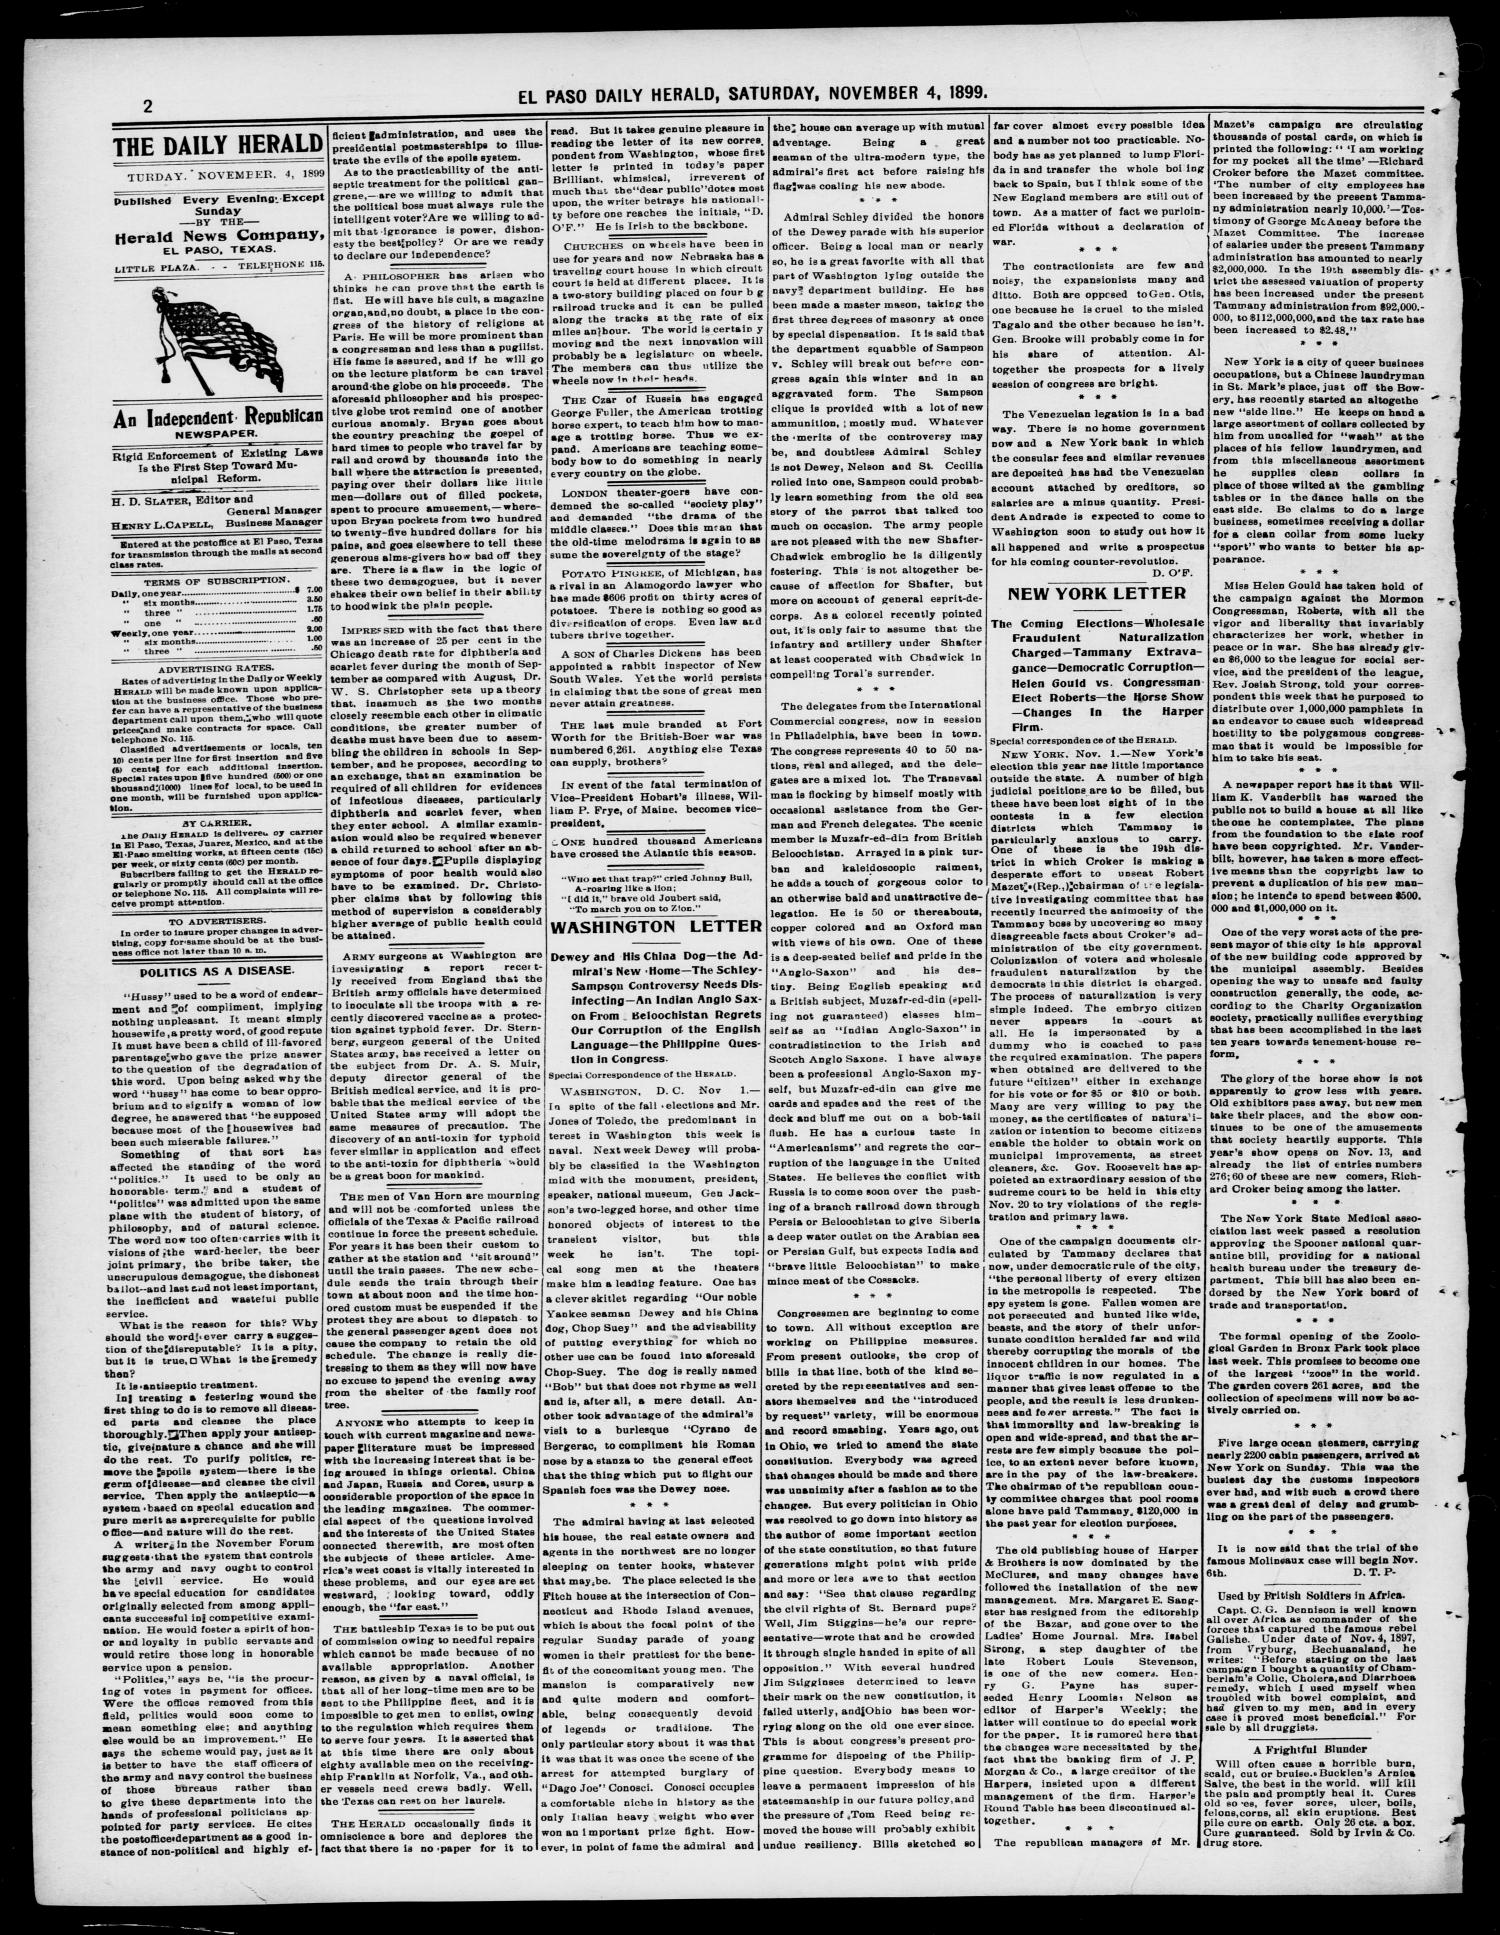 El Paso Daily Herald. (El Paso, Tex.), Vol. 19TH YEAR, No. 260, Ed. 1 Saturday, November 4, 1899                                                                                                      [Sequence #]: 2 of 12